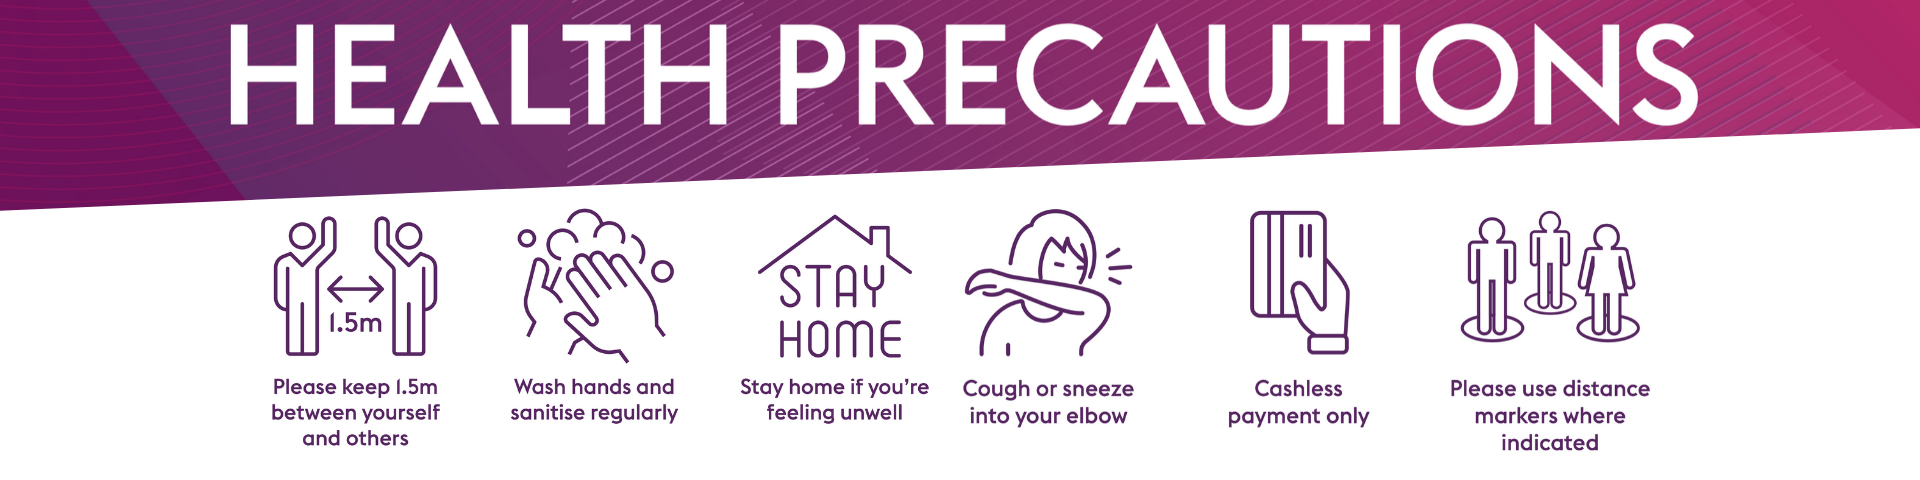 SQ-Health-Precautions-1920x480.png